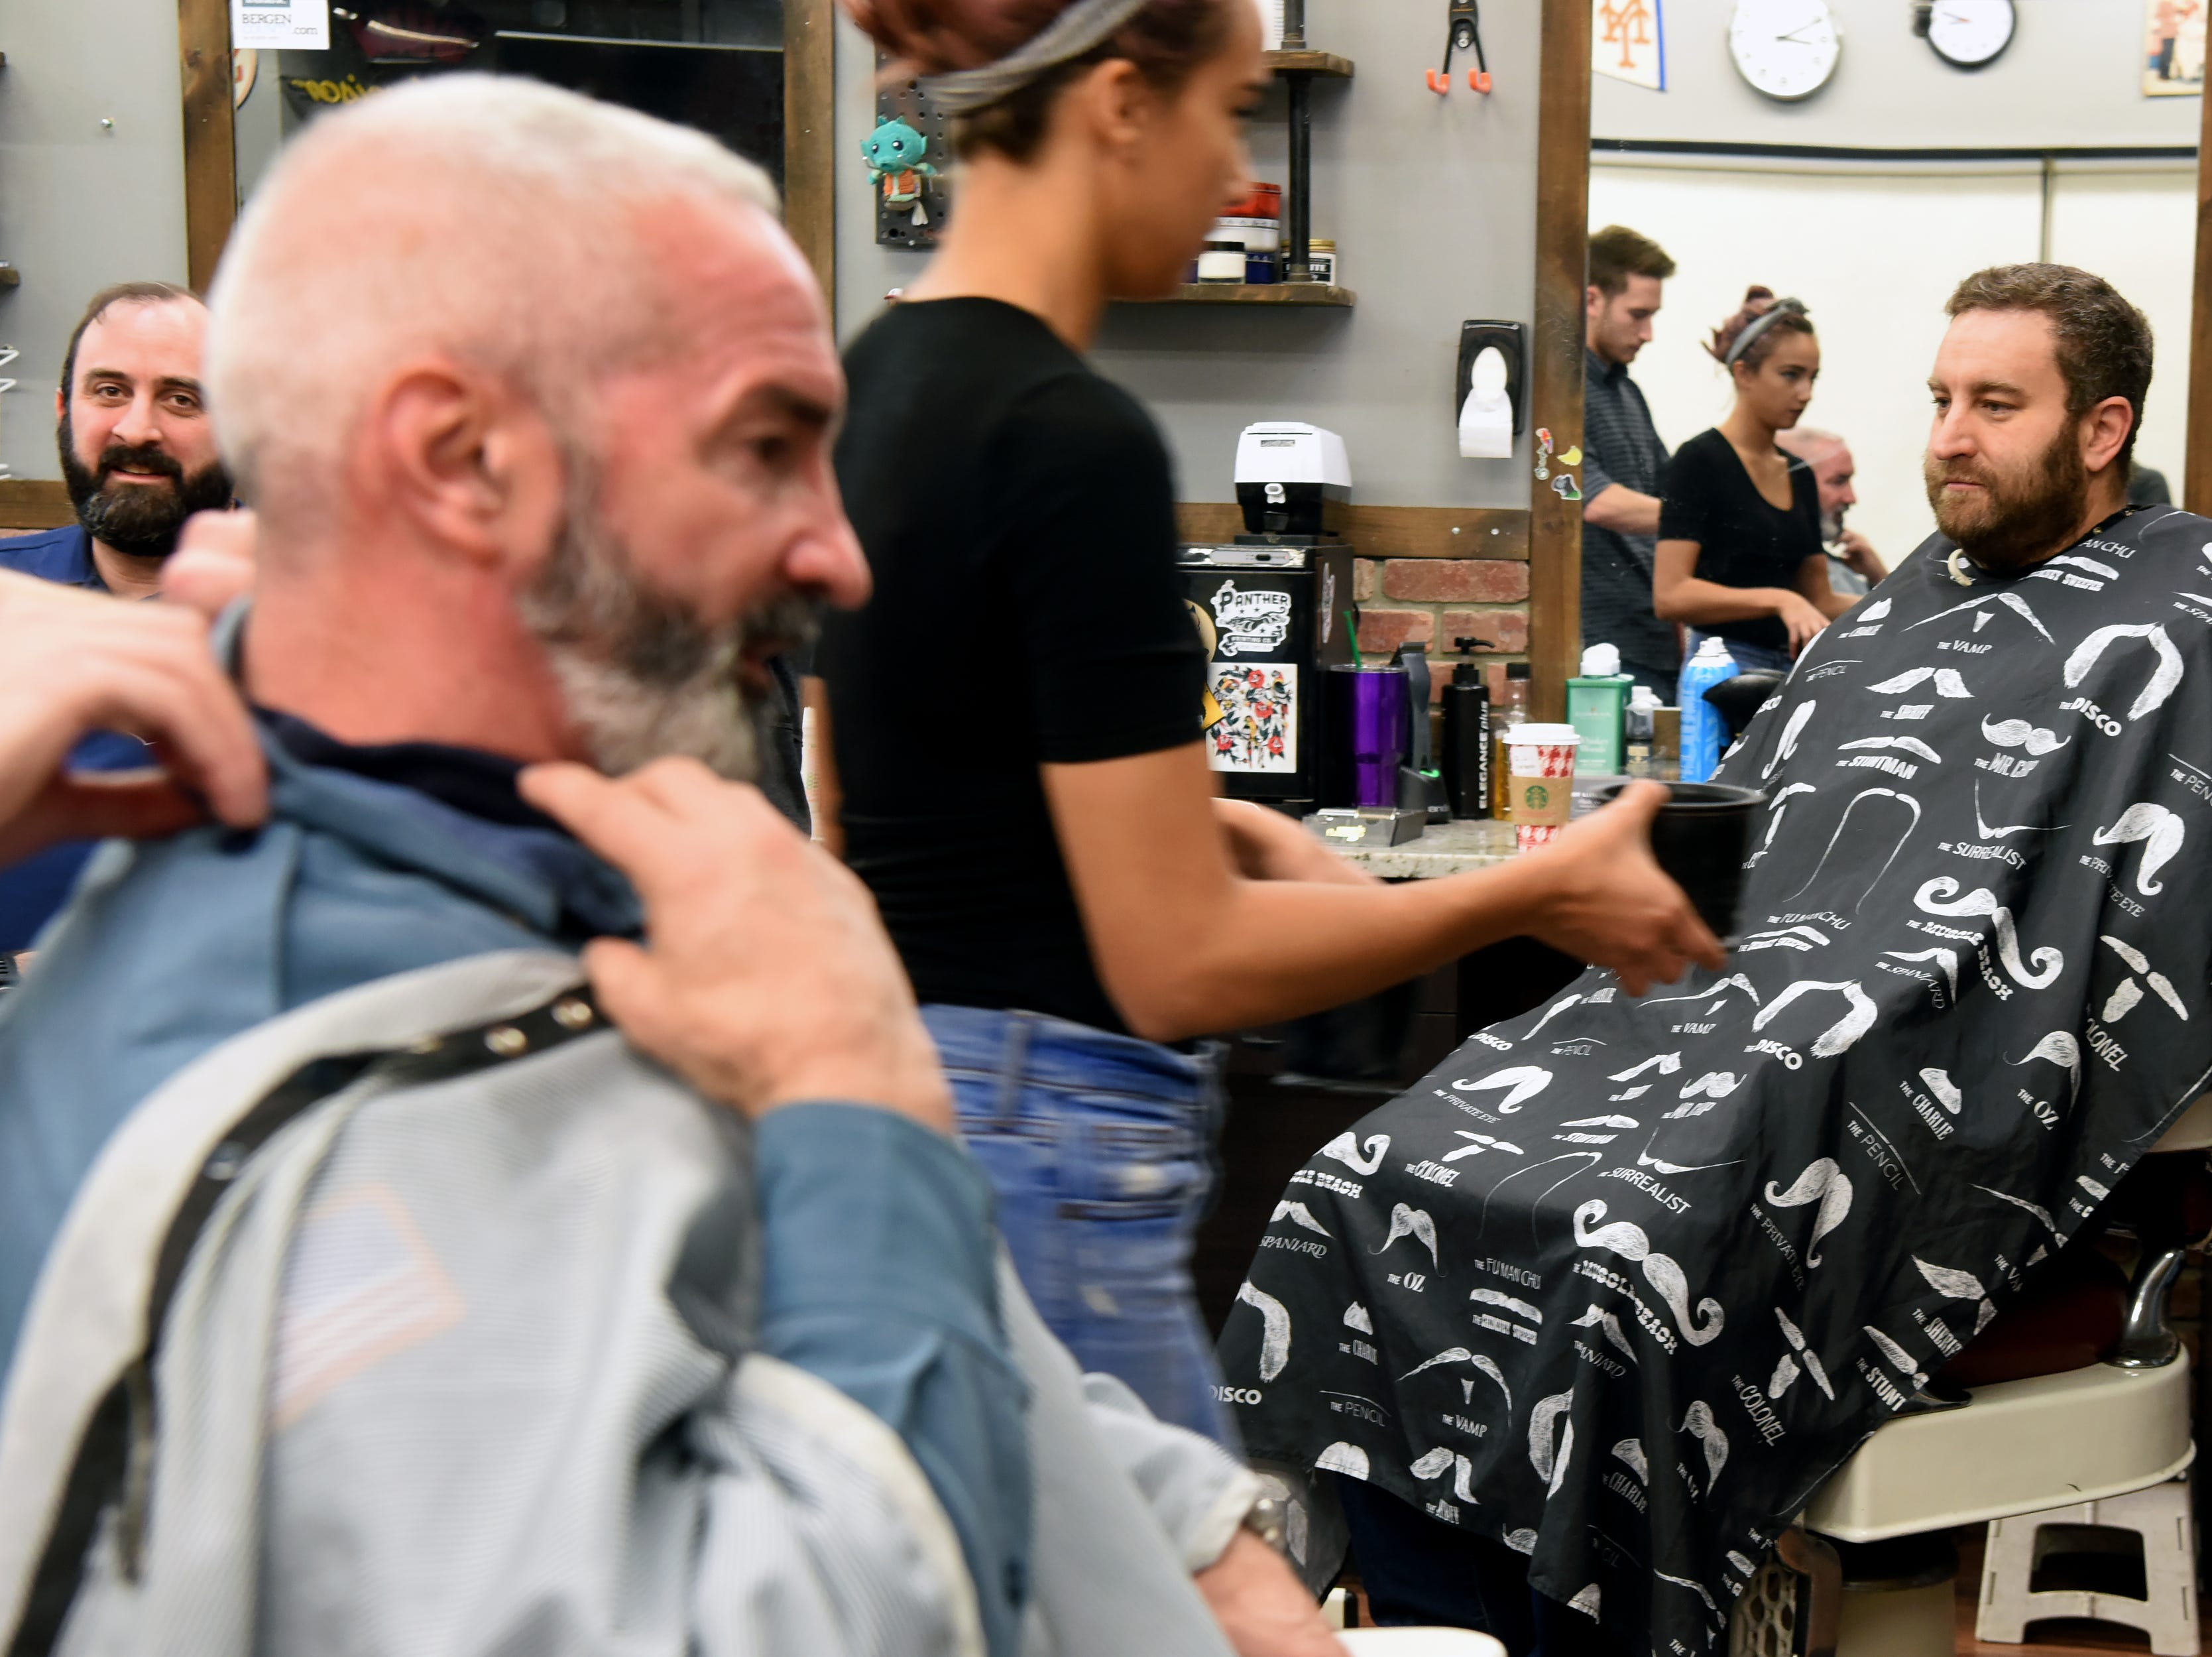 The Ridgewood, Wyckoff and Franklin Lakes PBAs held their No-Shave November Annual Shave-Off at Iconic Barber Shop in Glen Rock on Sunday, December 2, 2018. The money raised will help a Ridgewood family pay medical bills. Iconic Barber Shop also donated 100% percent of the proceeds from Sunday morning's Shave-Off.